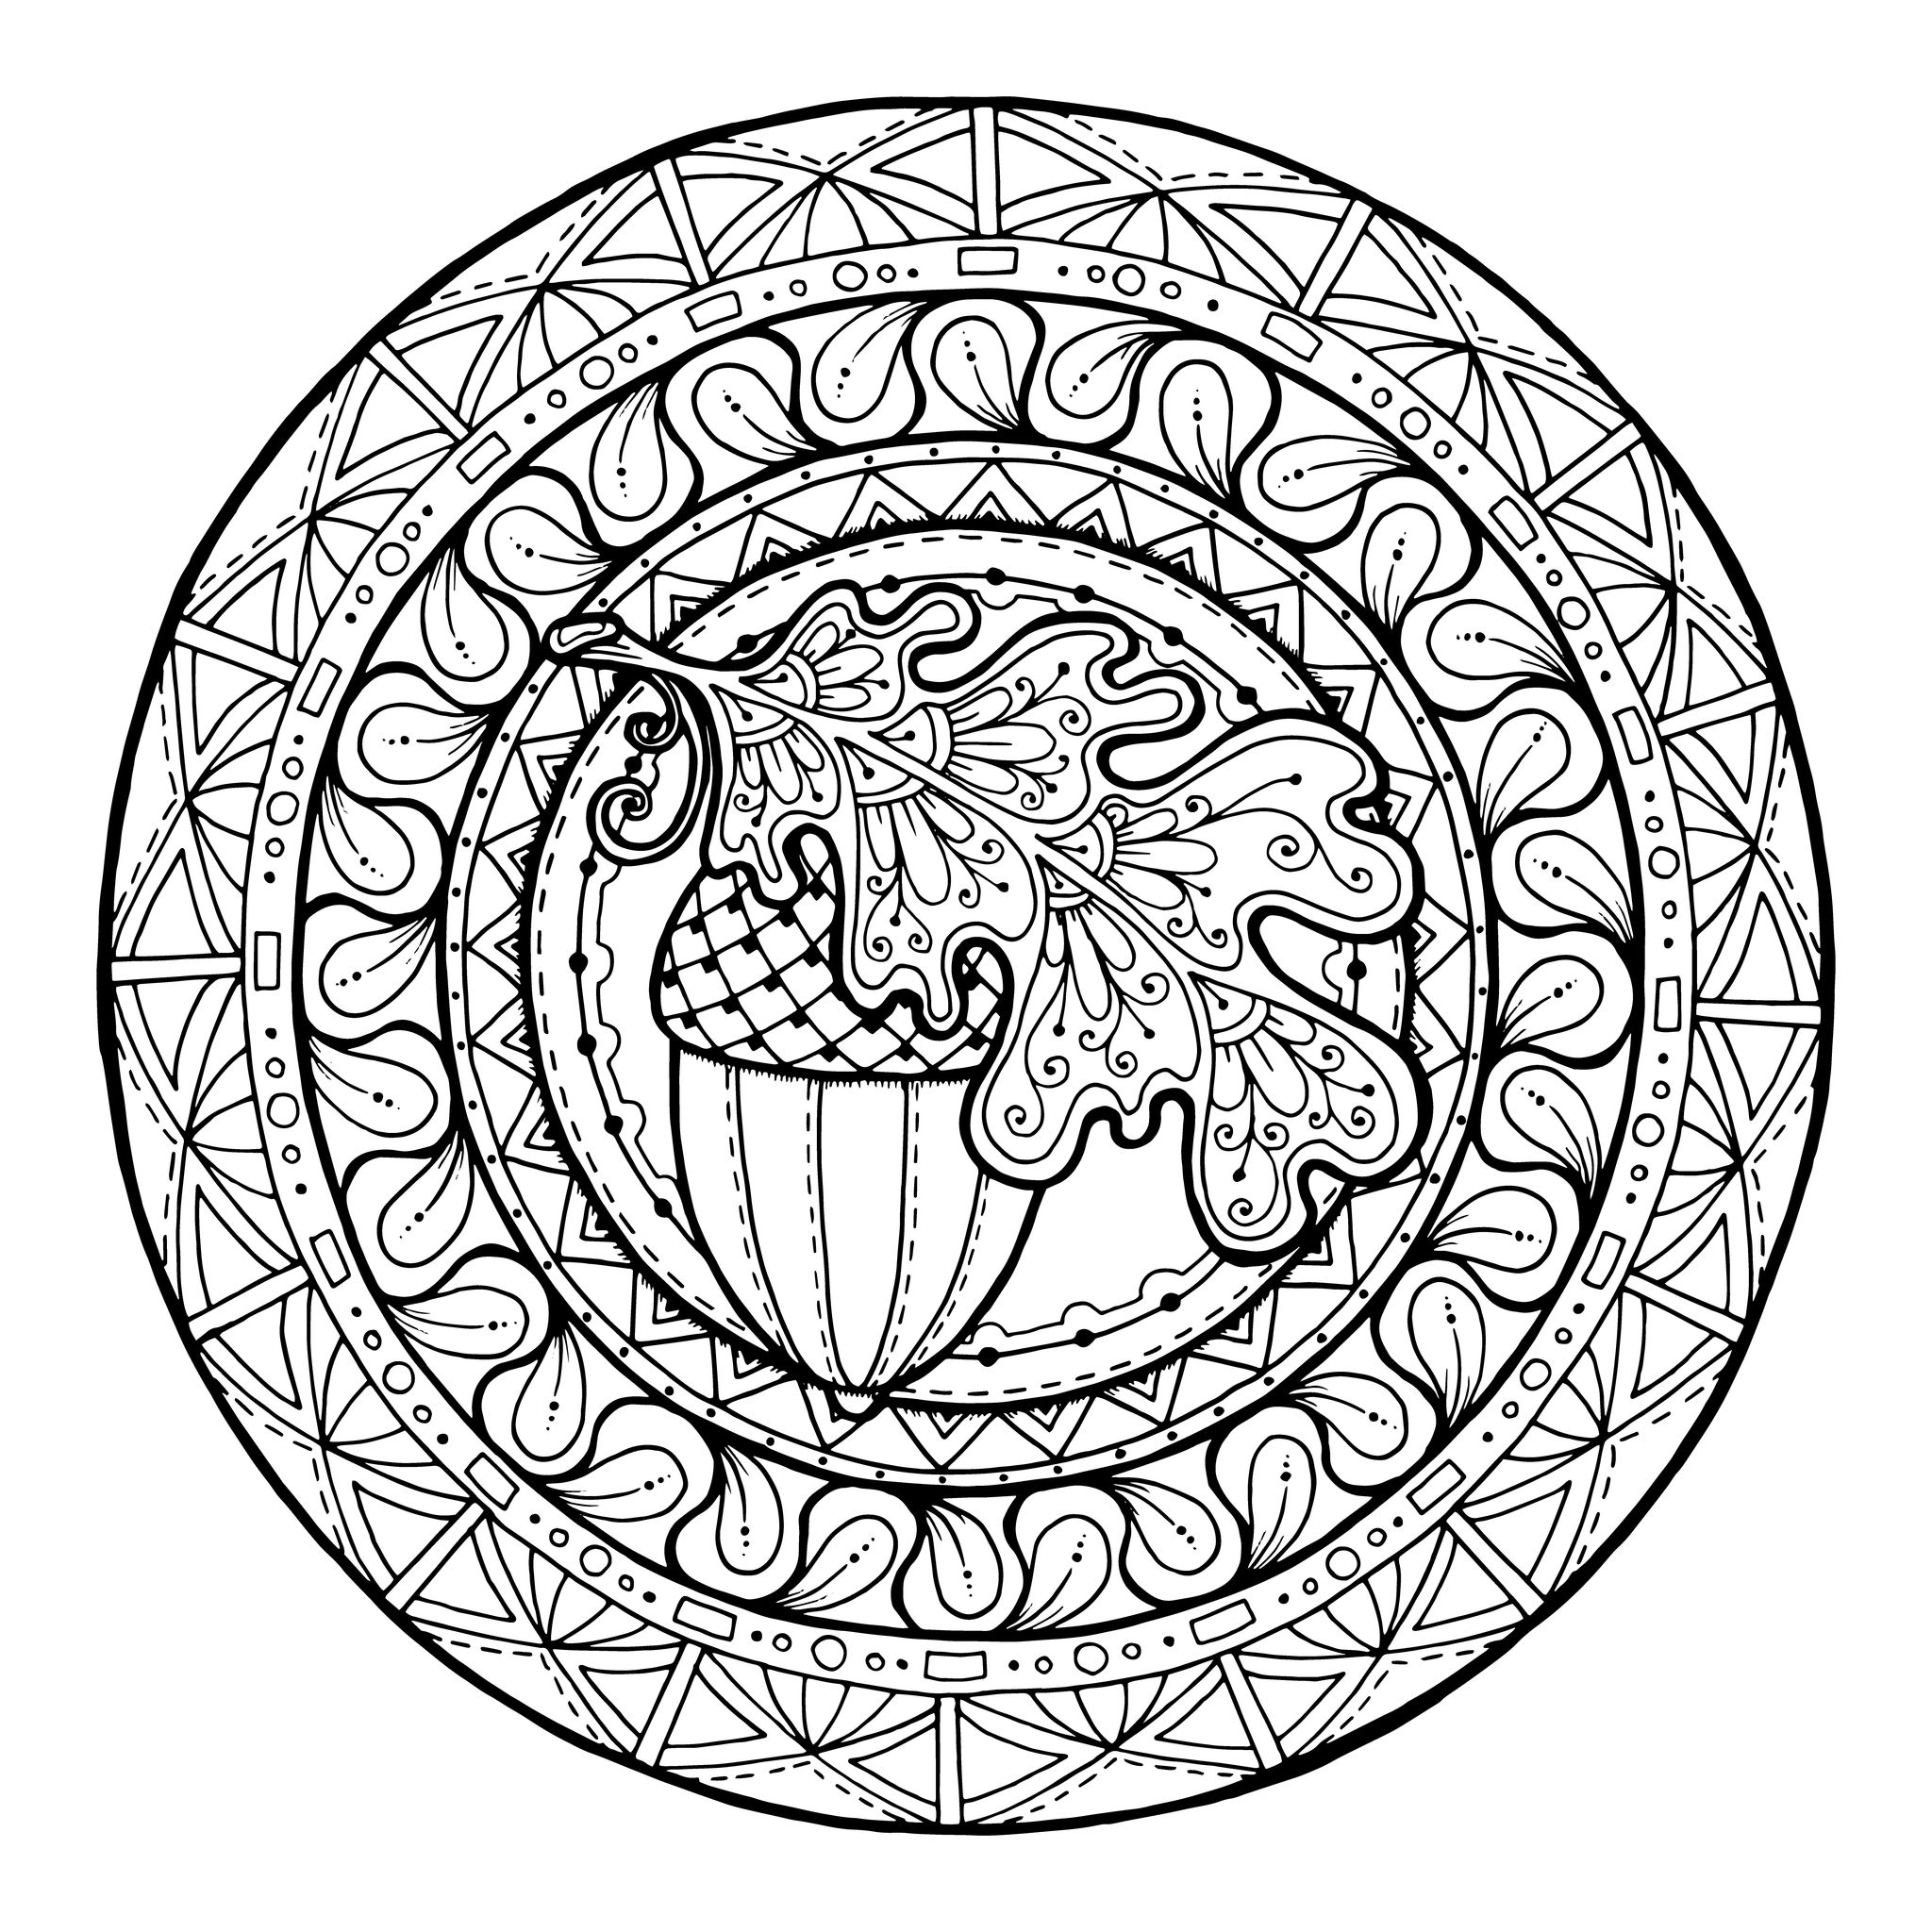 Mandalas coloring page to download